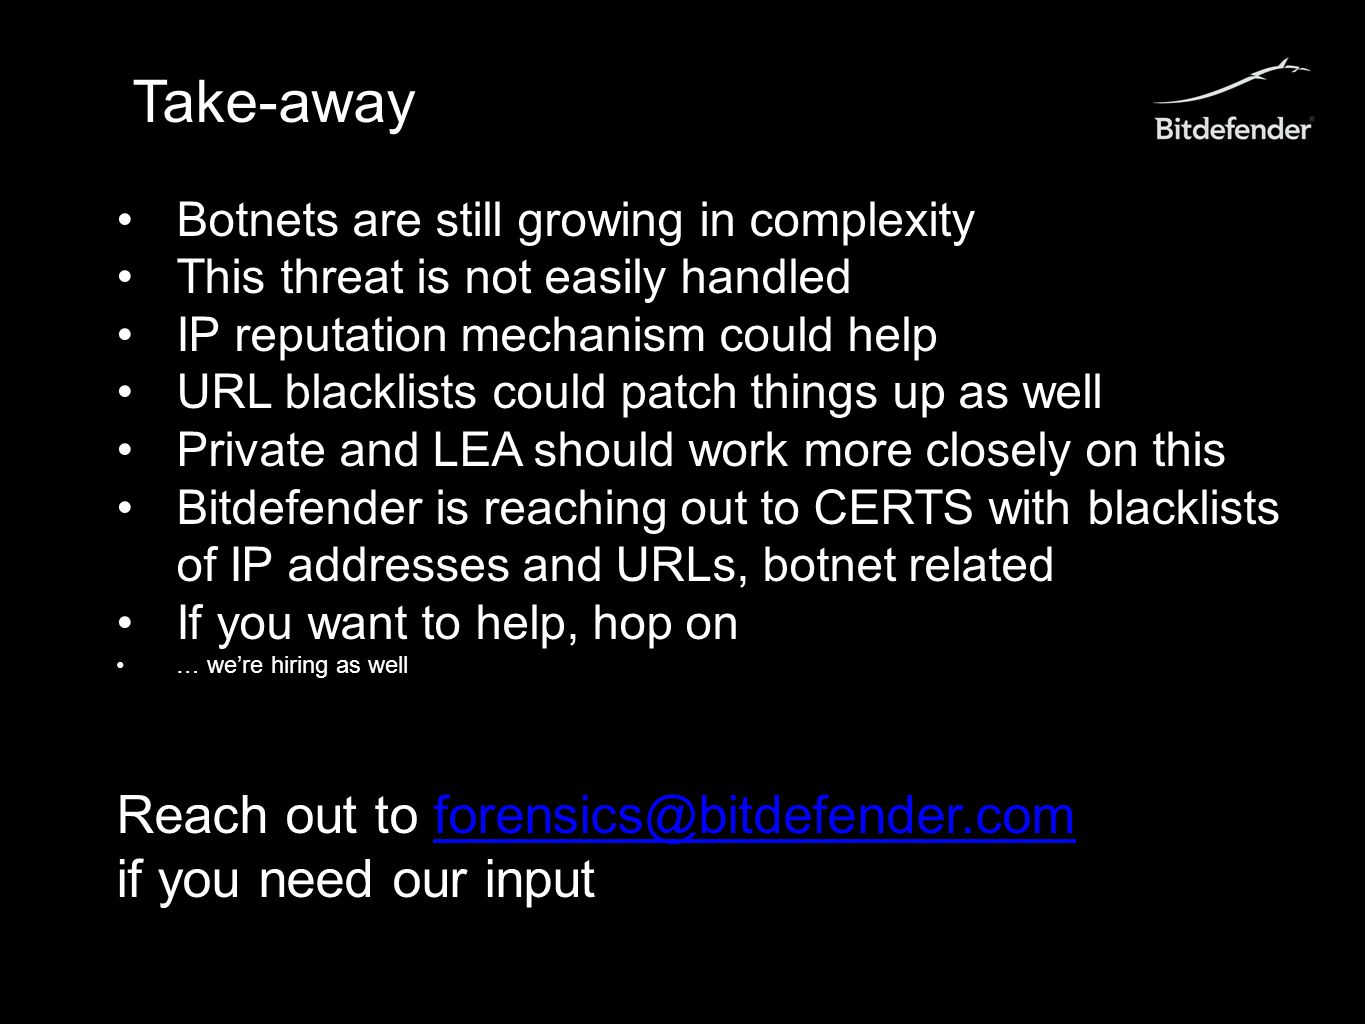 Take-away Botnets are still growing in complexity This threat is not easily handled IP reputation mechanism could help URL blacklists could patch things up as well Private and LEA should work more closely on this Bitdefender is reaching out to CERTS with blacklists of IP addresses and URLs, botnet related If you want to help, hop on … we're hiring as well Reach out to forensics@bitdefender.comforensics@bitdefender.com if you need our input